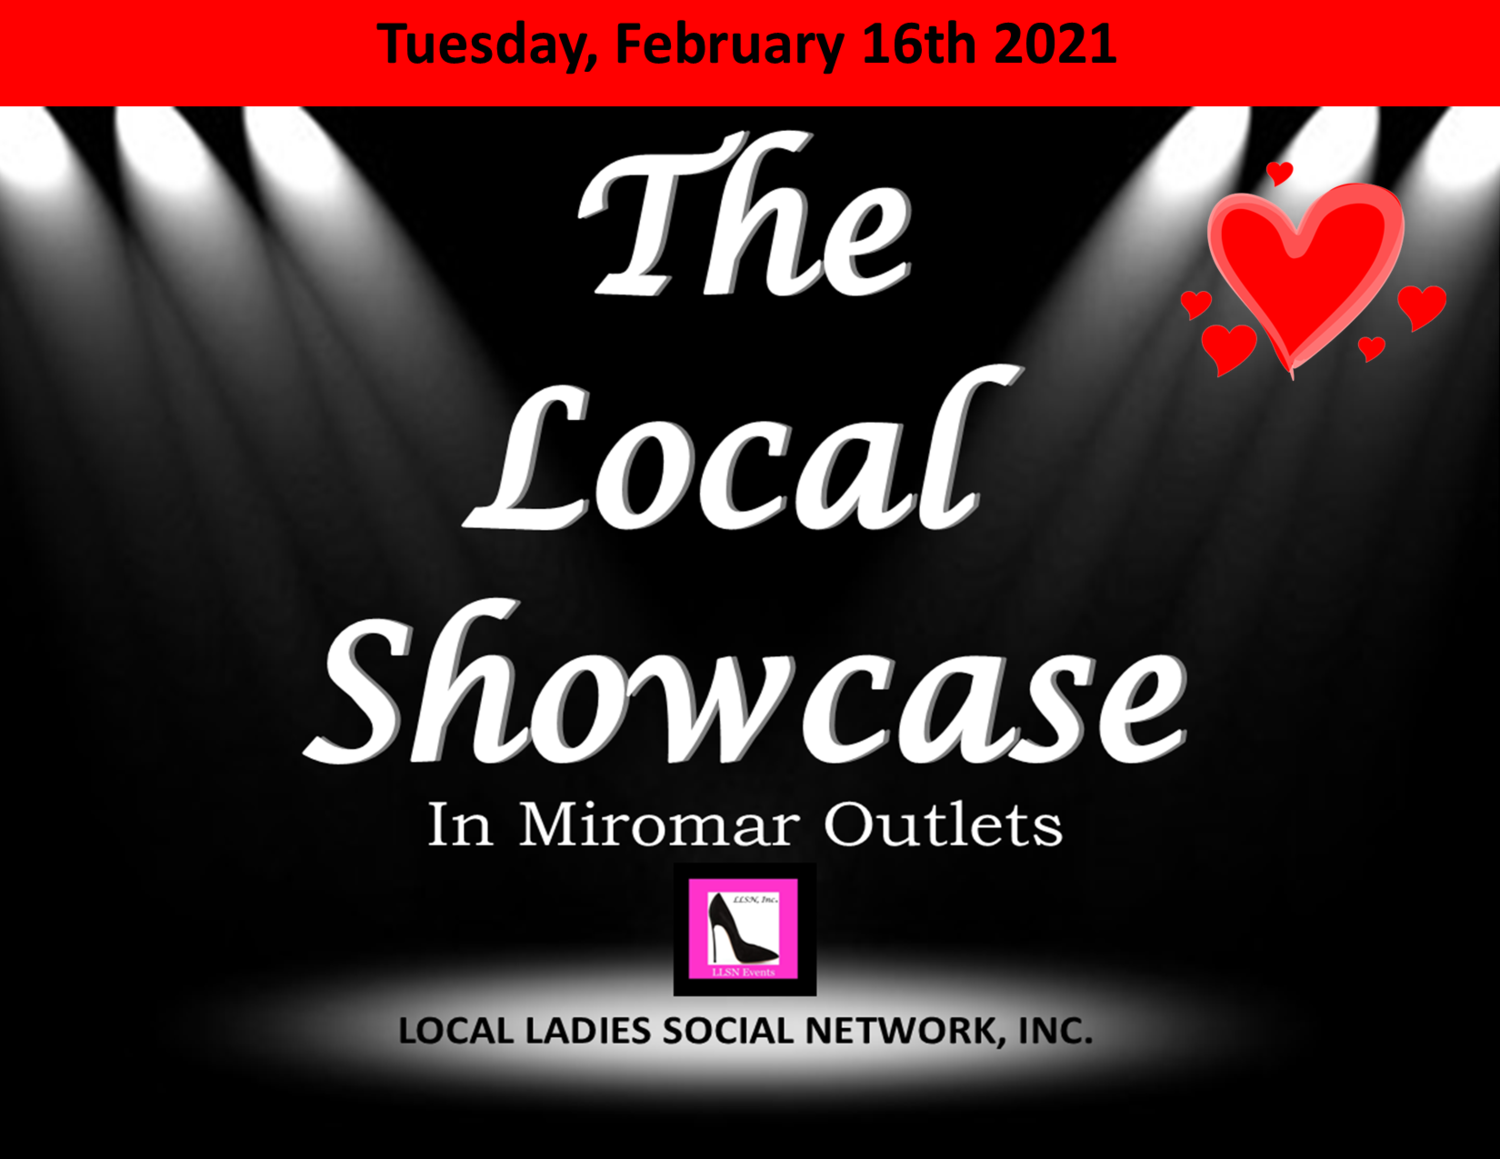 Tuesday, February 16th 11am-7pm.